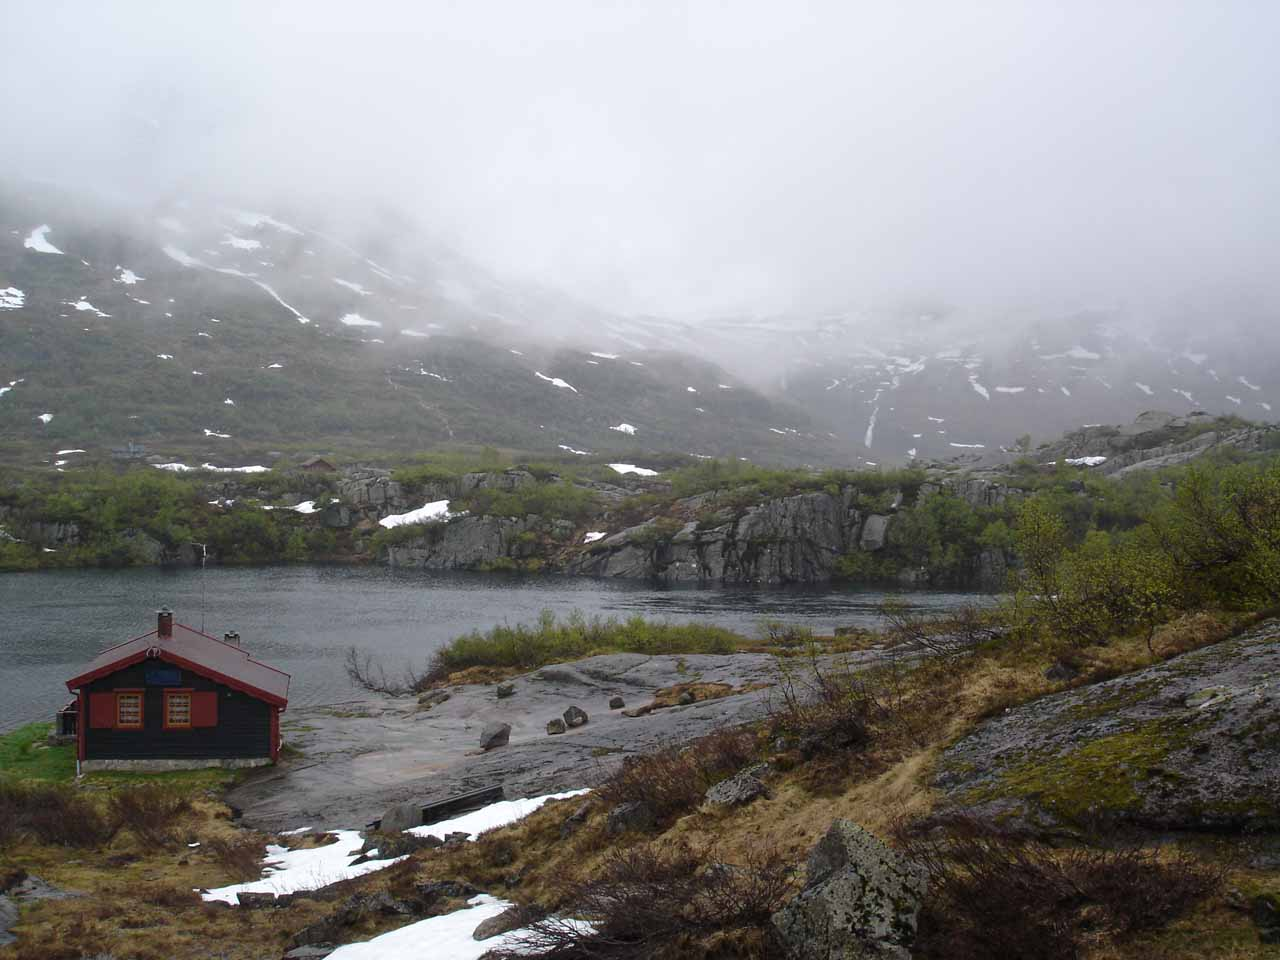 After visiting Hongavikfossen, we continued driving north beyond Sauda into the moorish highlands on the way to Roldal. During the drive, we saw scenic spots like this despite the bad weather